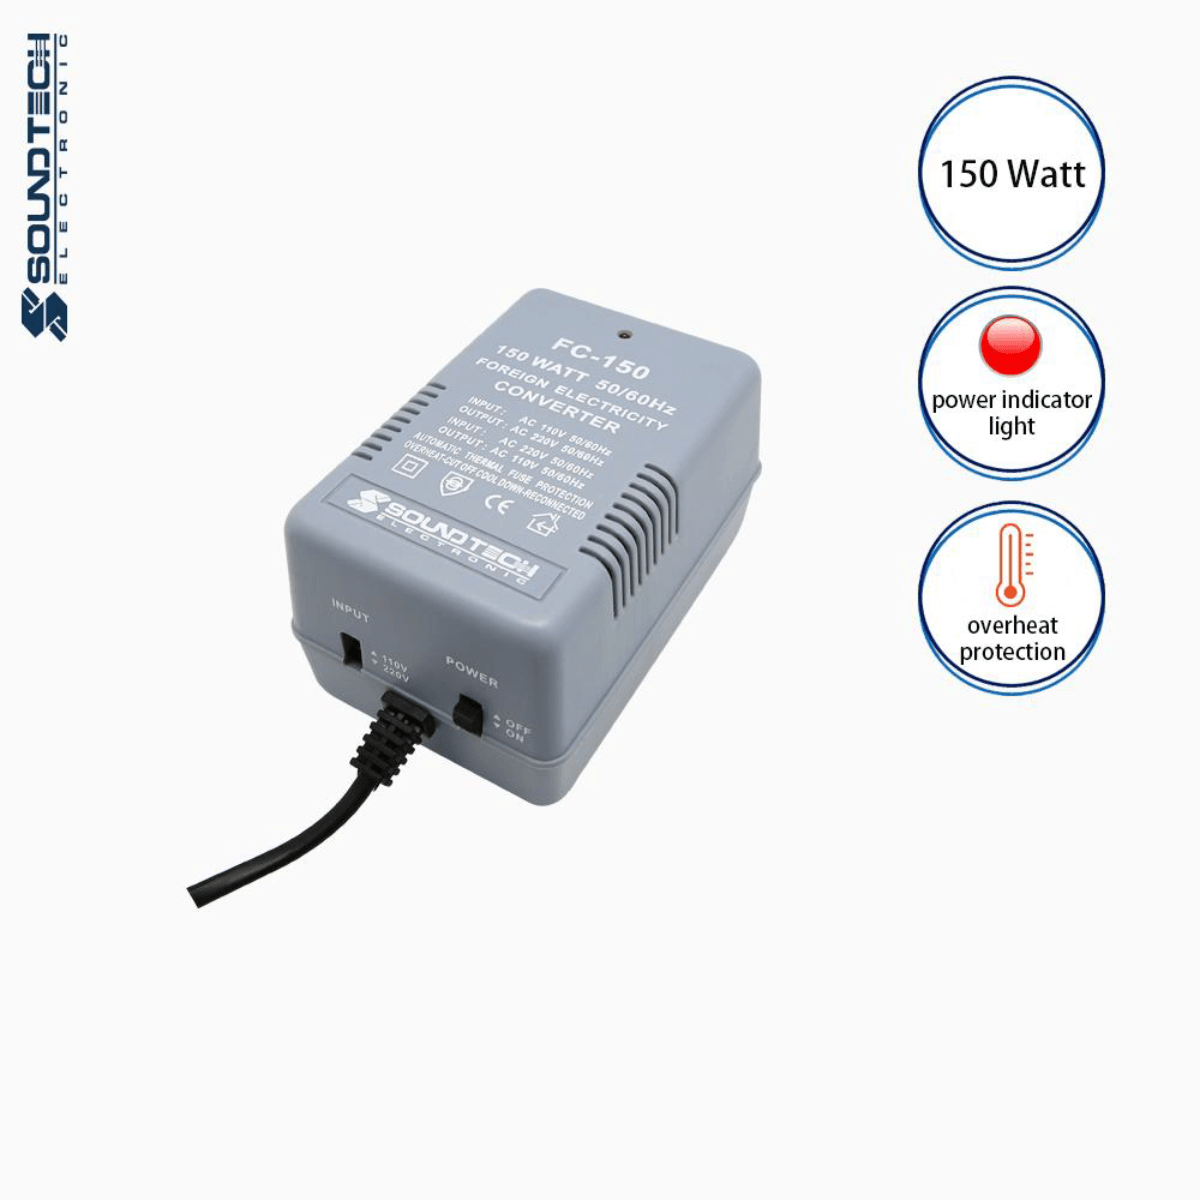 Soundteoh 150 Watt Foreign Electricity AC-AC  Converter FC-150